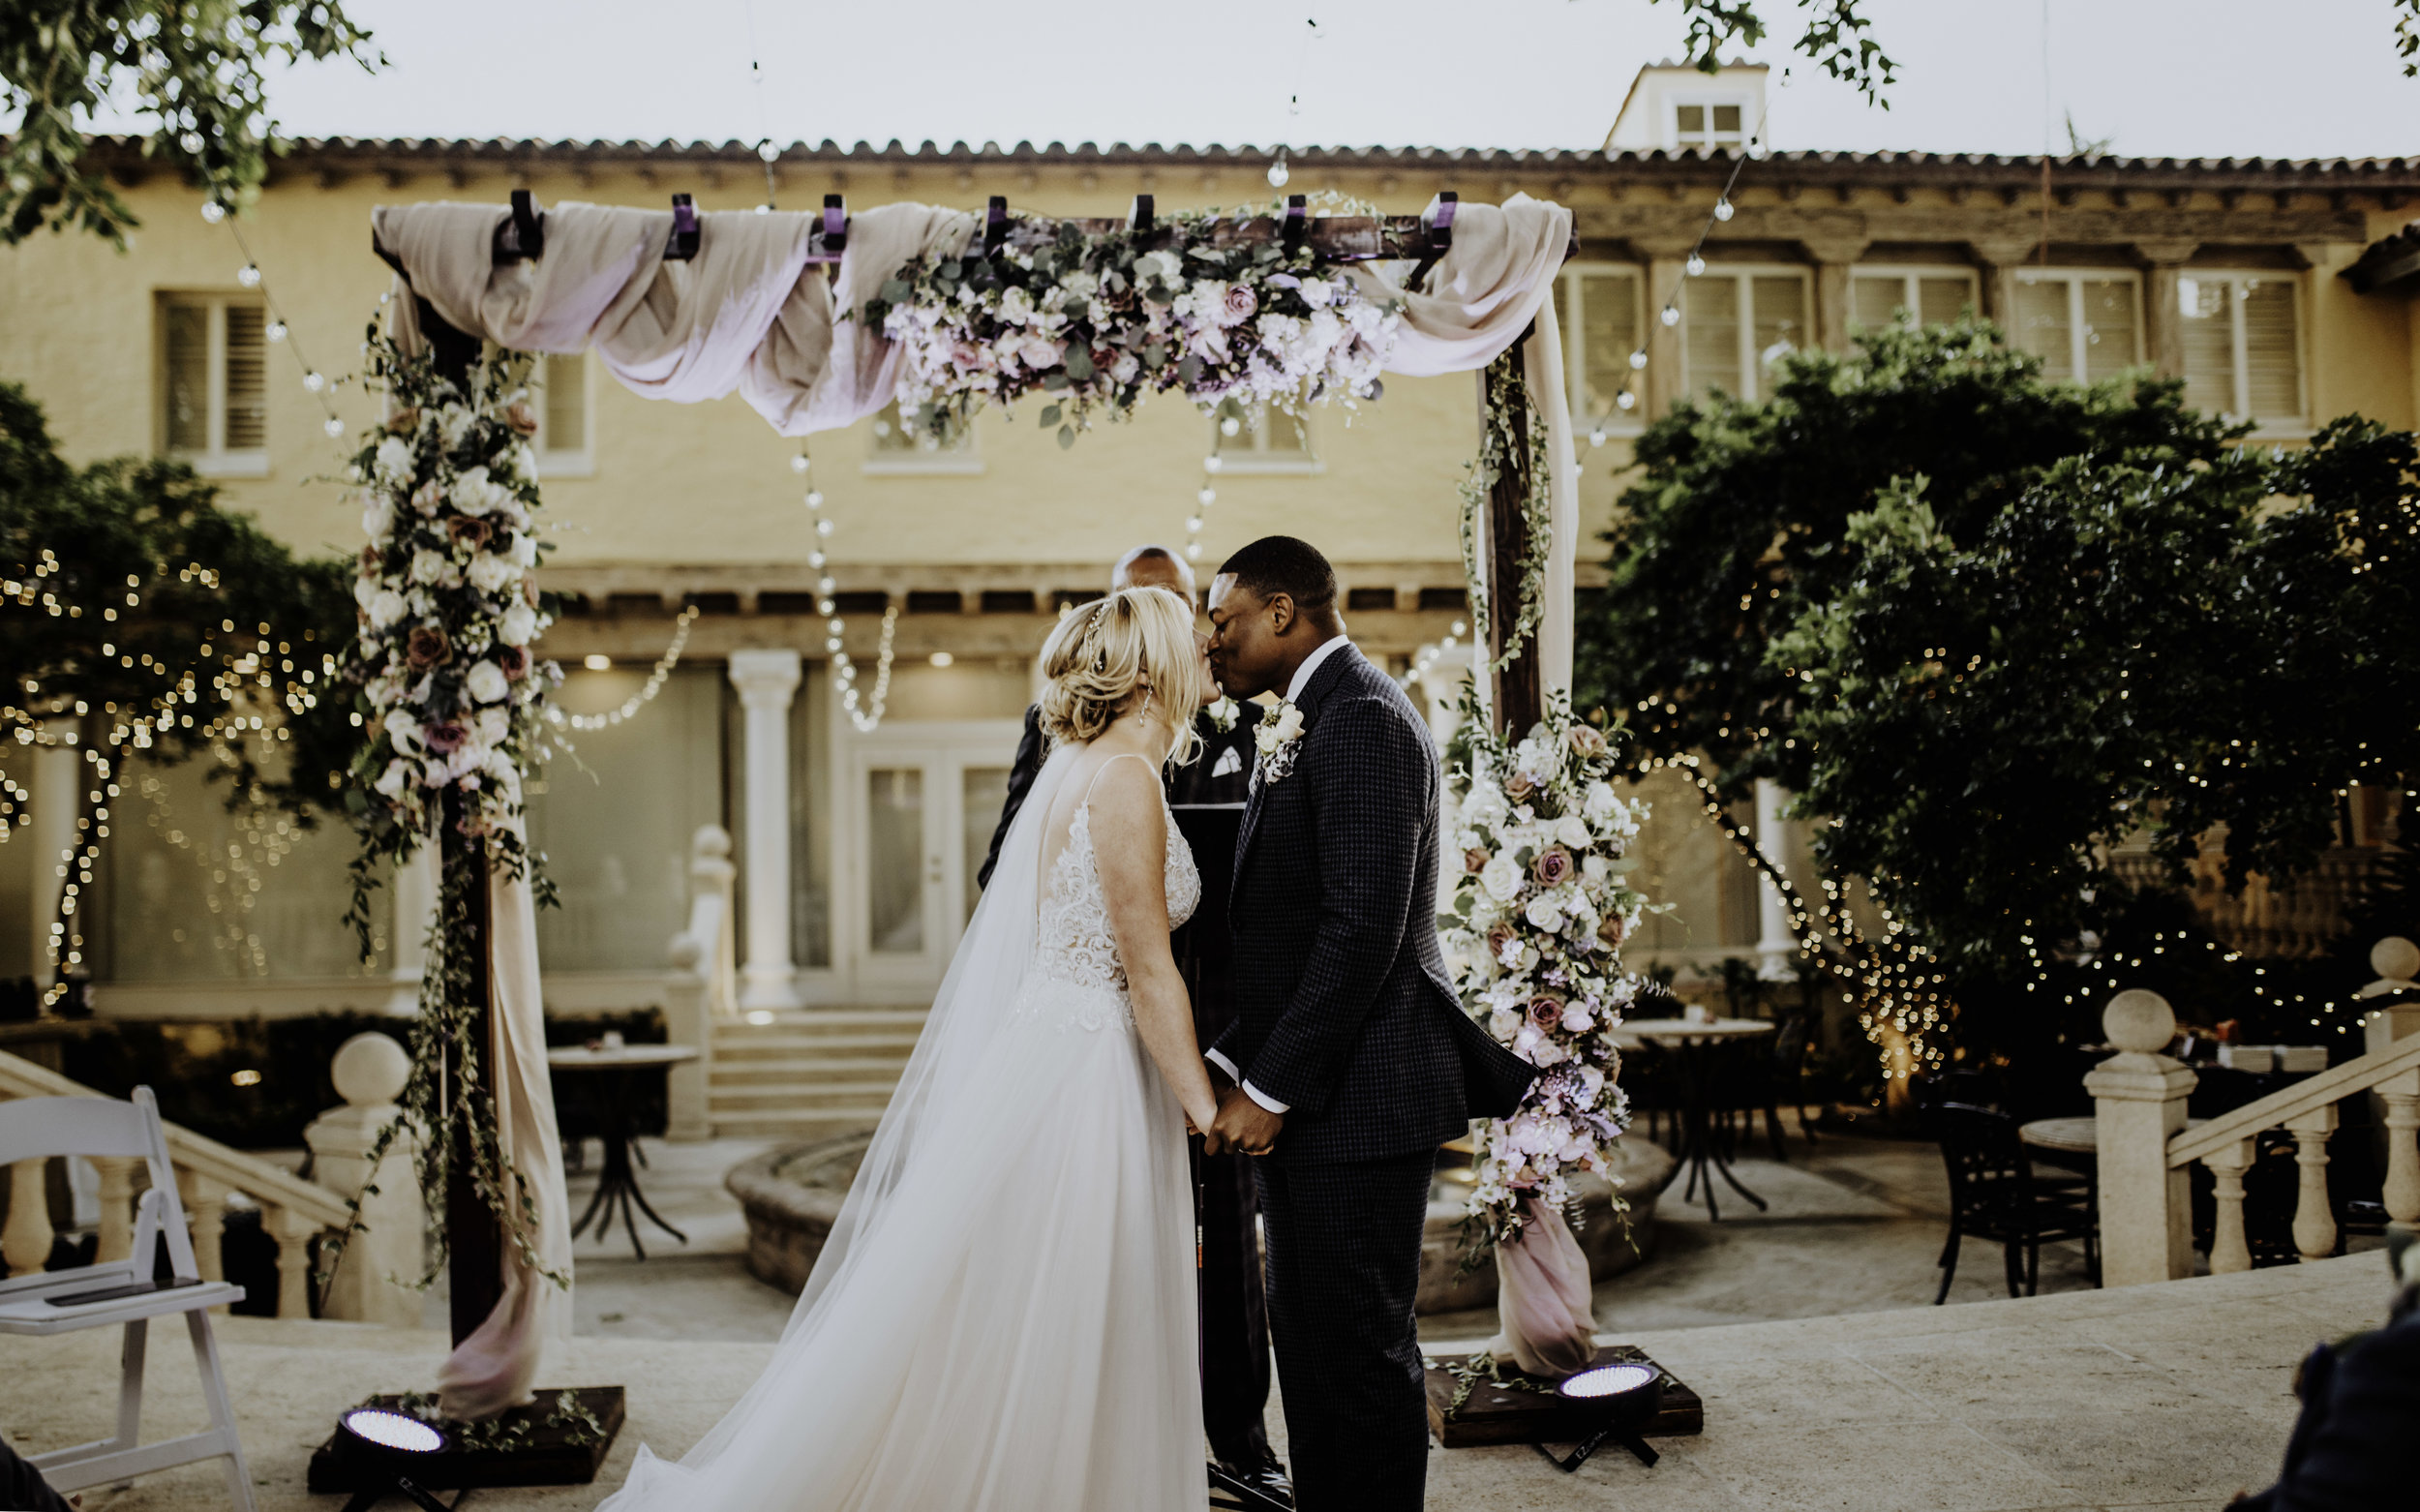 TARA + FREDDIE - December 23, 2018their day was filled with loving support from their closet family and friends.